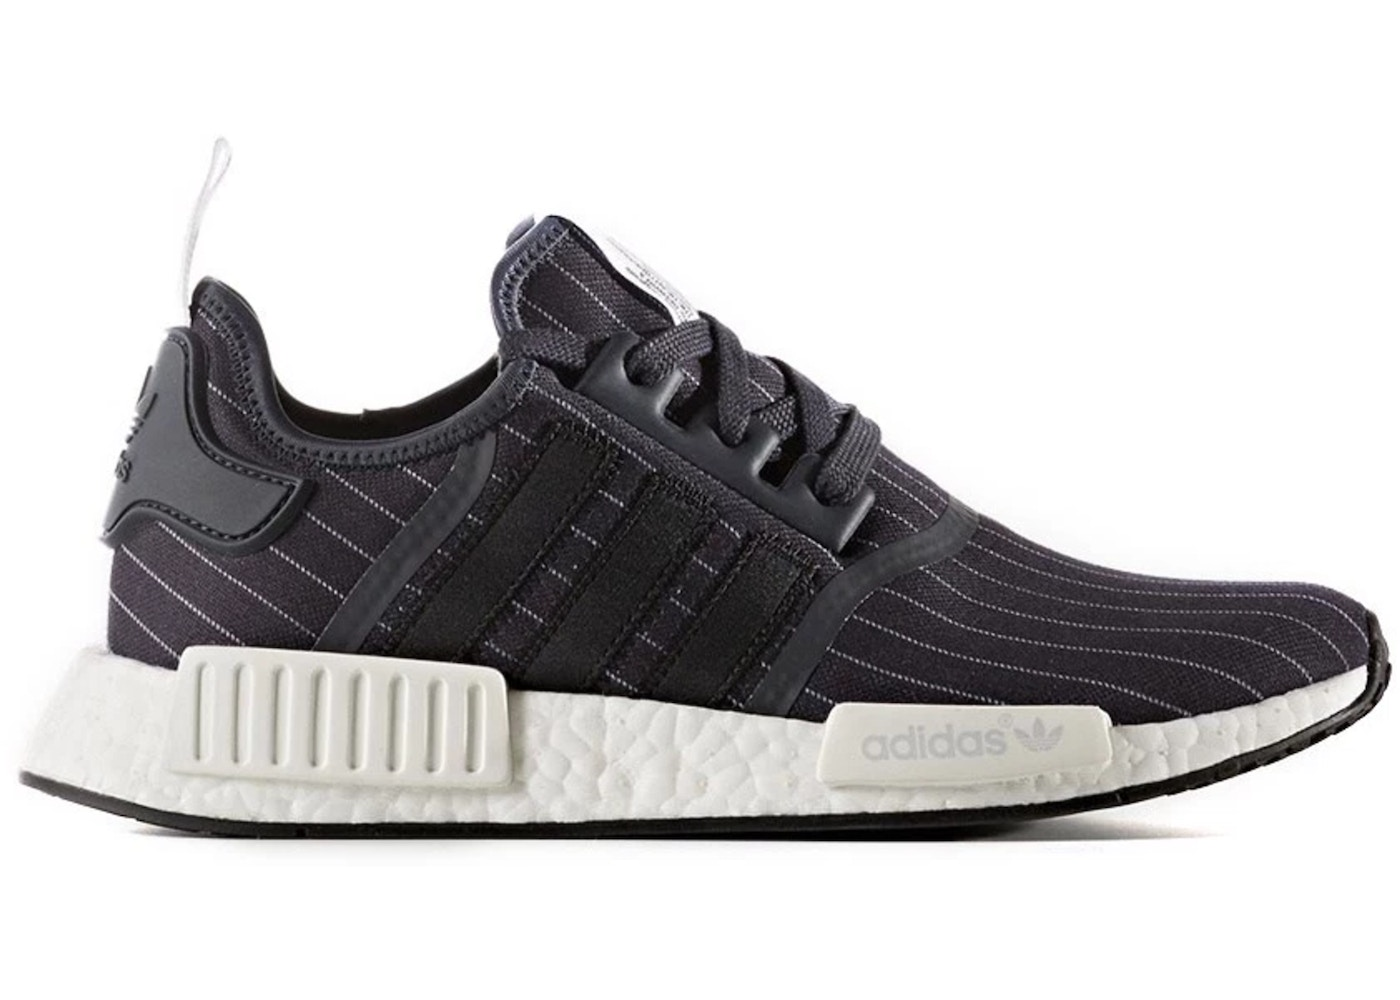 830be0cfa3825 adidas NMD R1 Bedwin   the Heartbreakers Black - BB3124